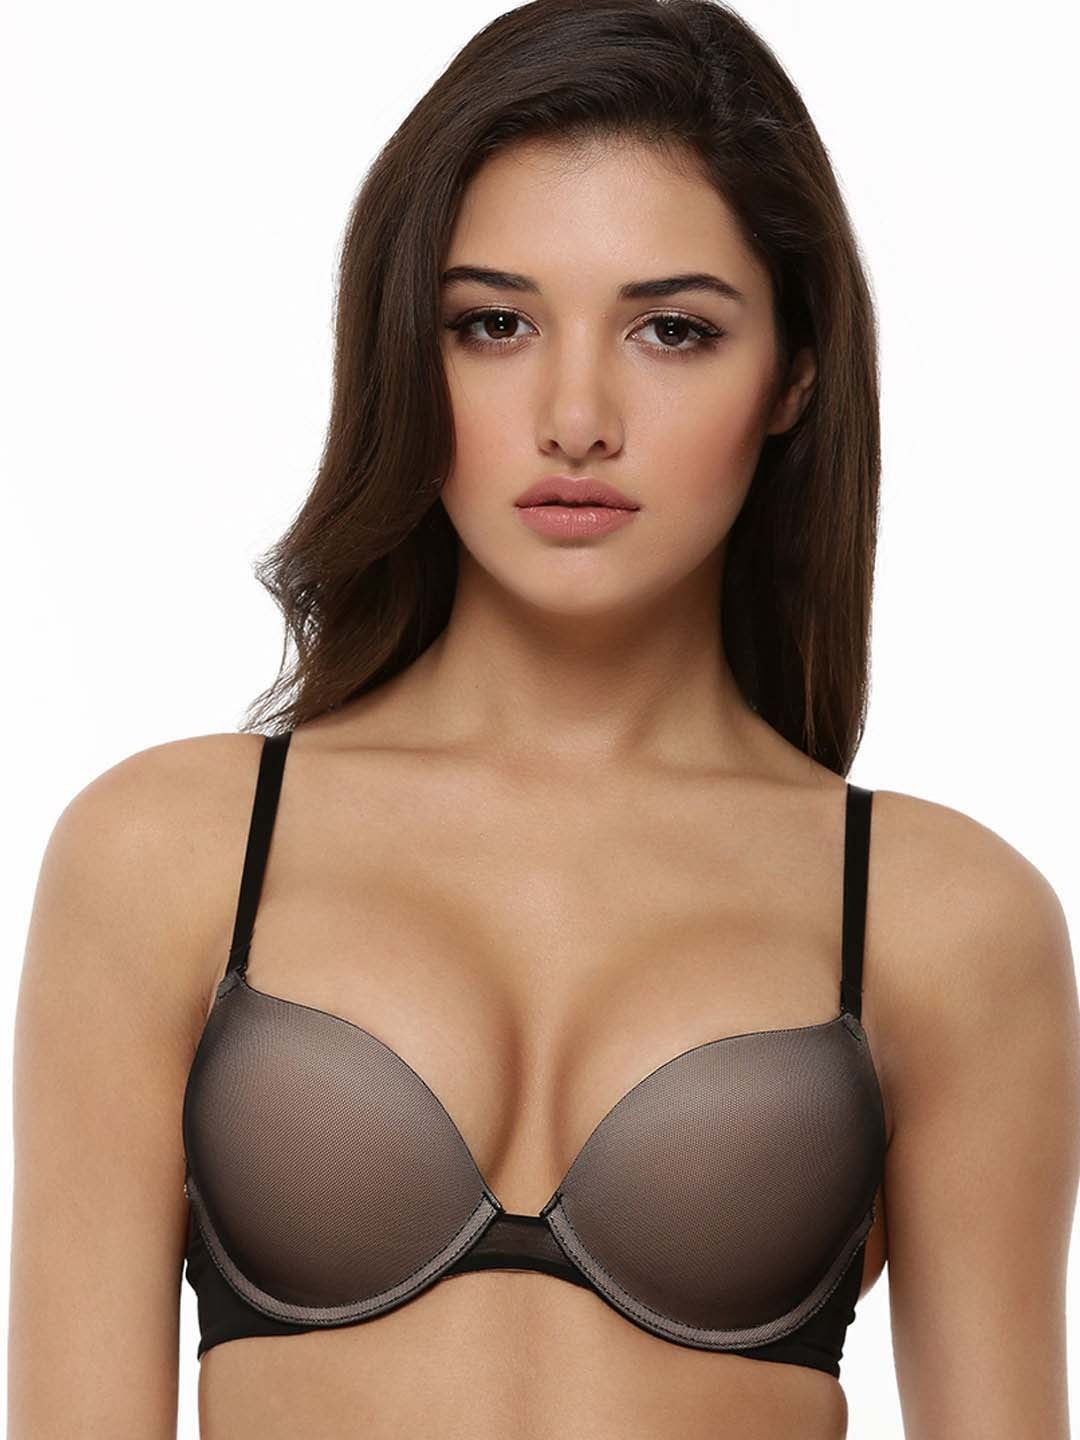 Buy MAGIC Double Push-Up Bra For Women - Women's Black Brassiere ...